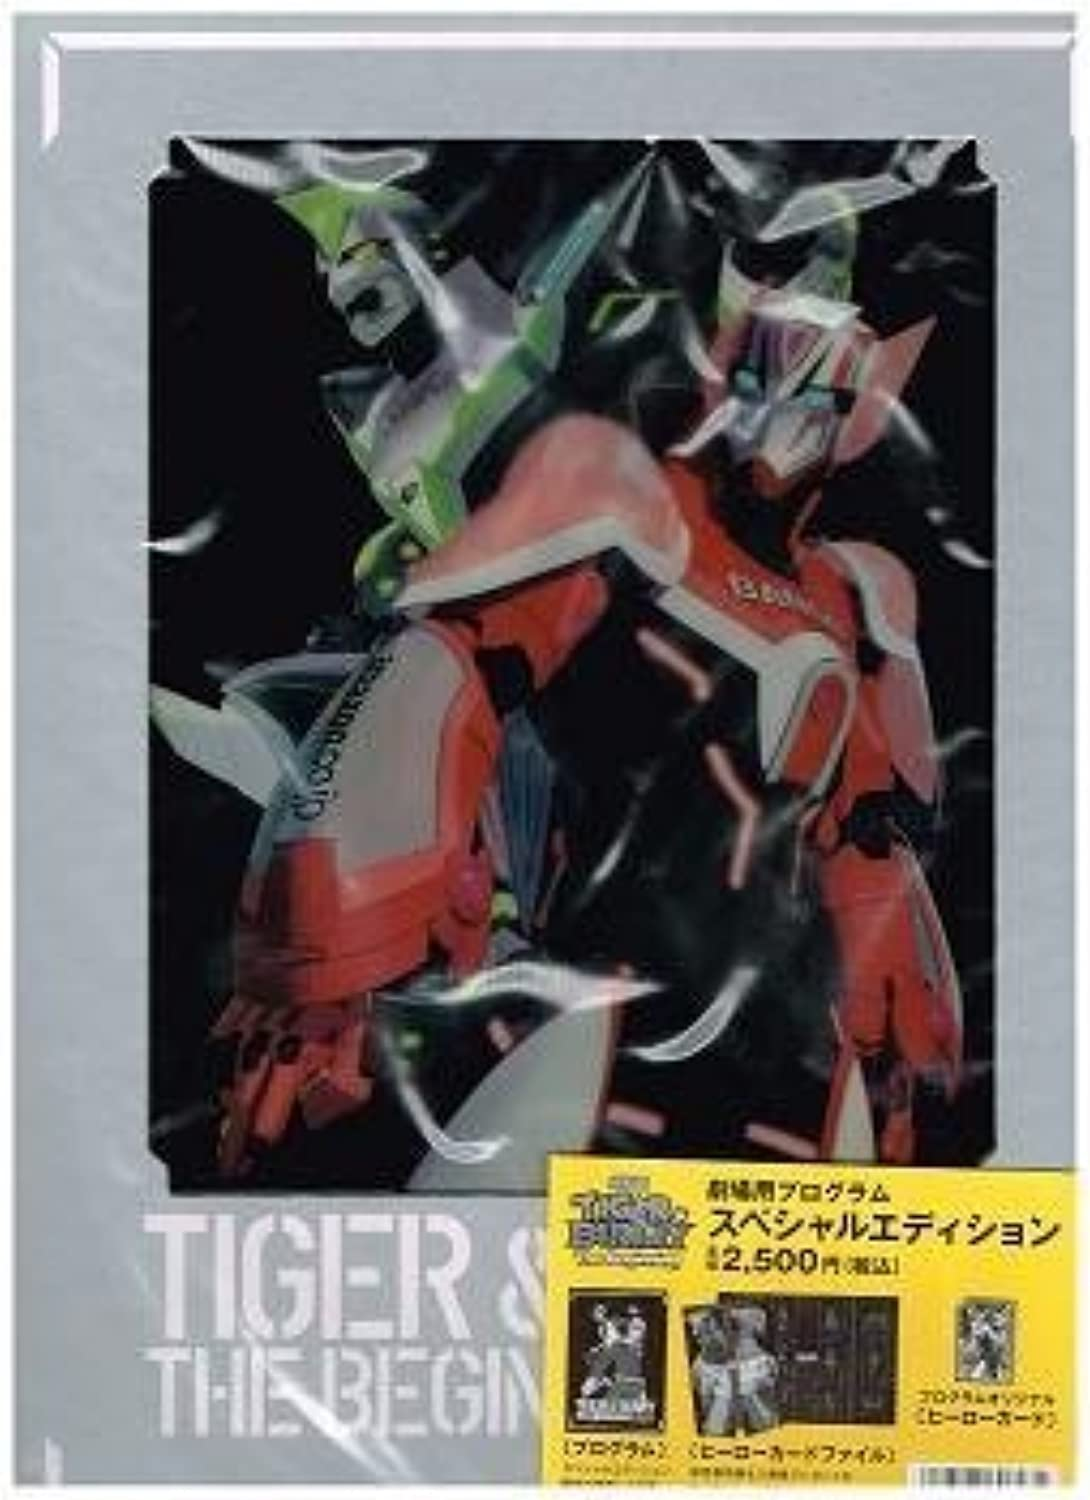 TIGER & BUNNY The Beginning the Movie Pamphlet [Special Edition]